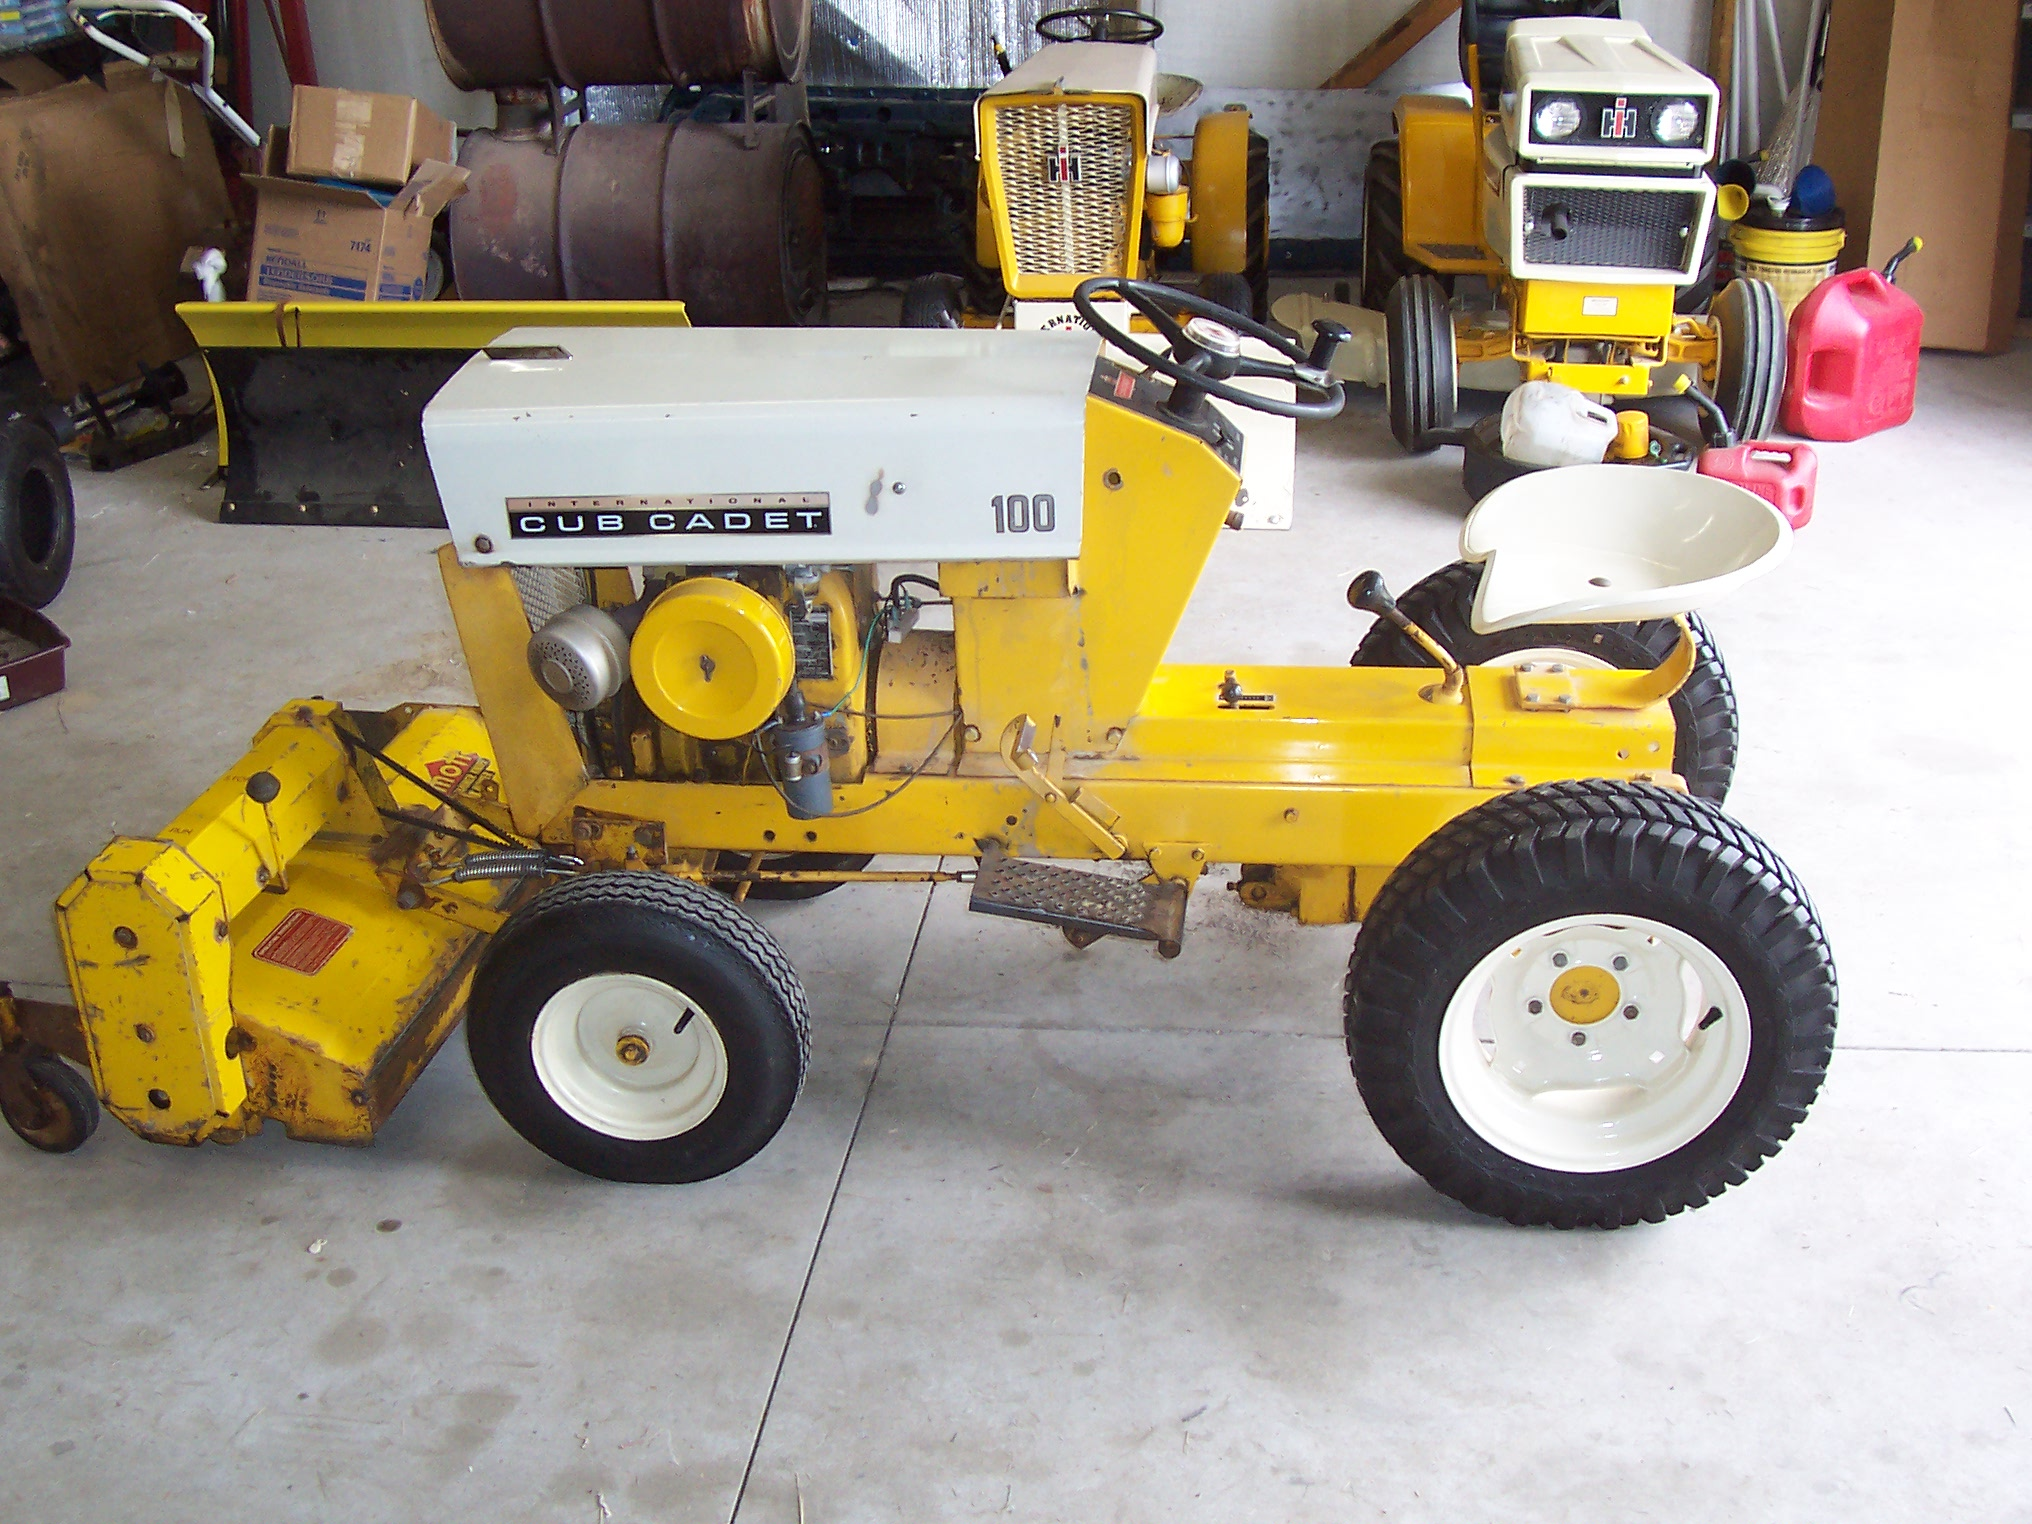 Pin On Lawn Mowers And Garden Tillers